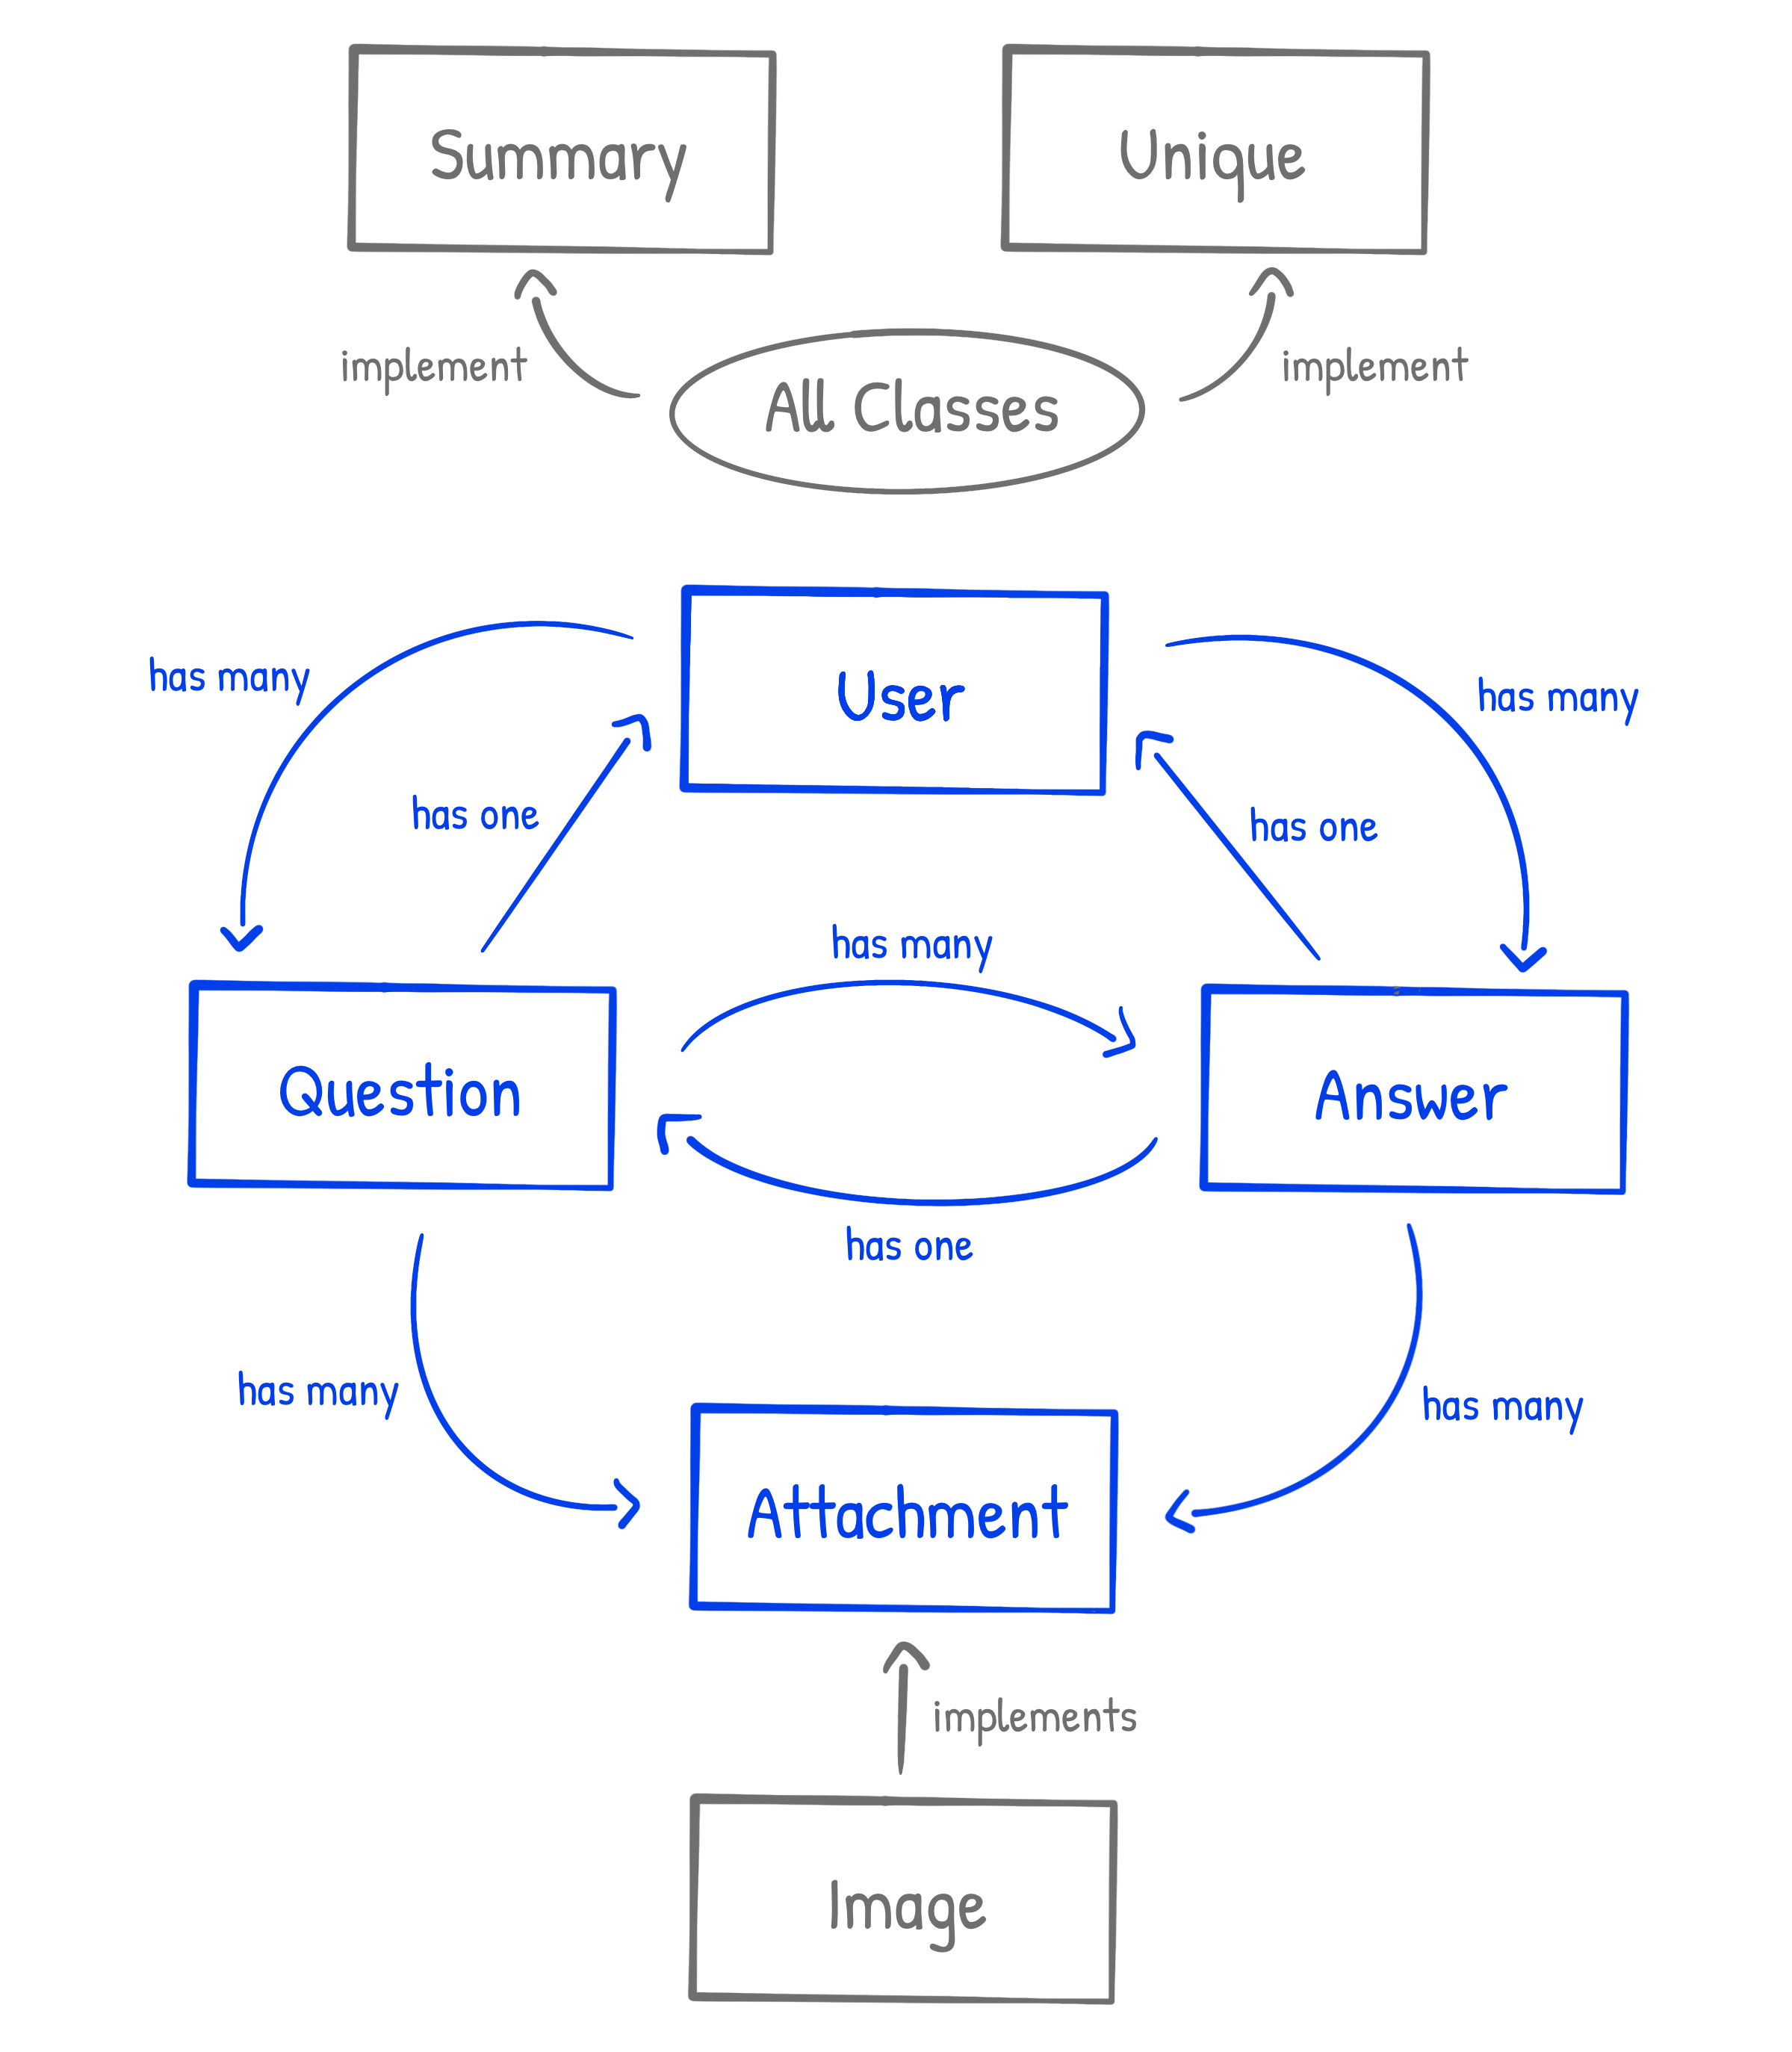 Question and Answer Class Diagram